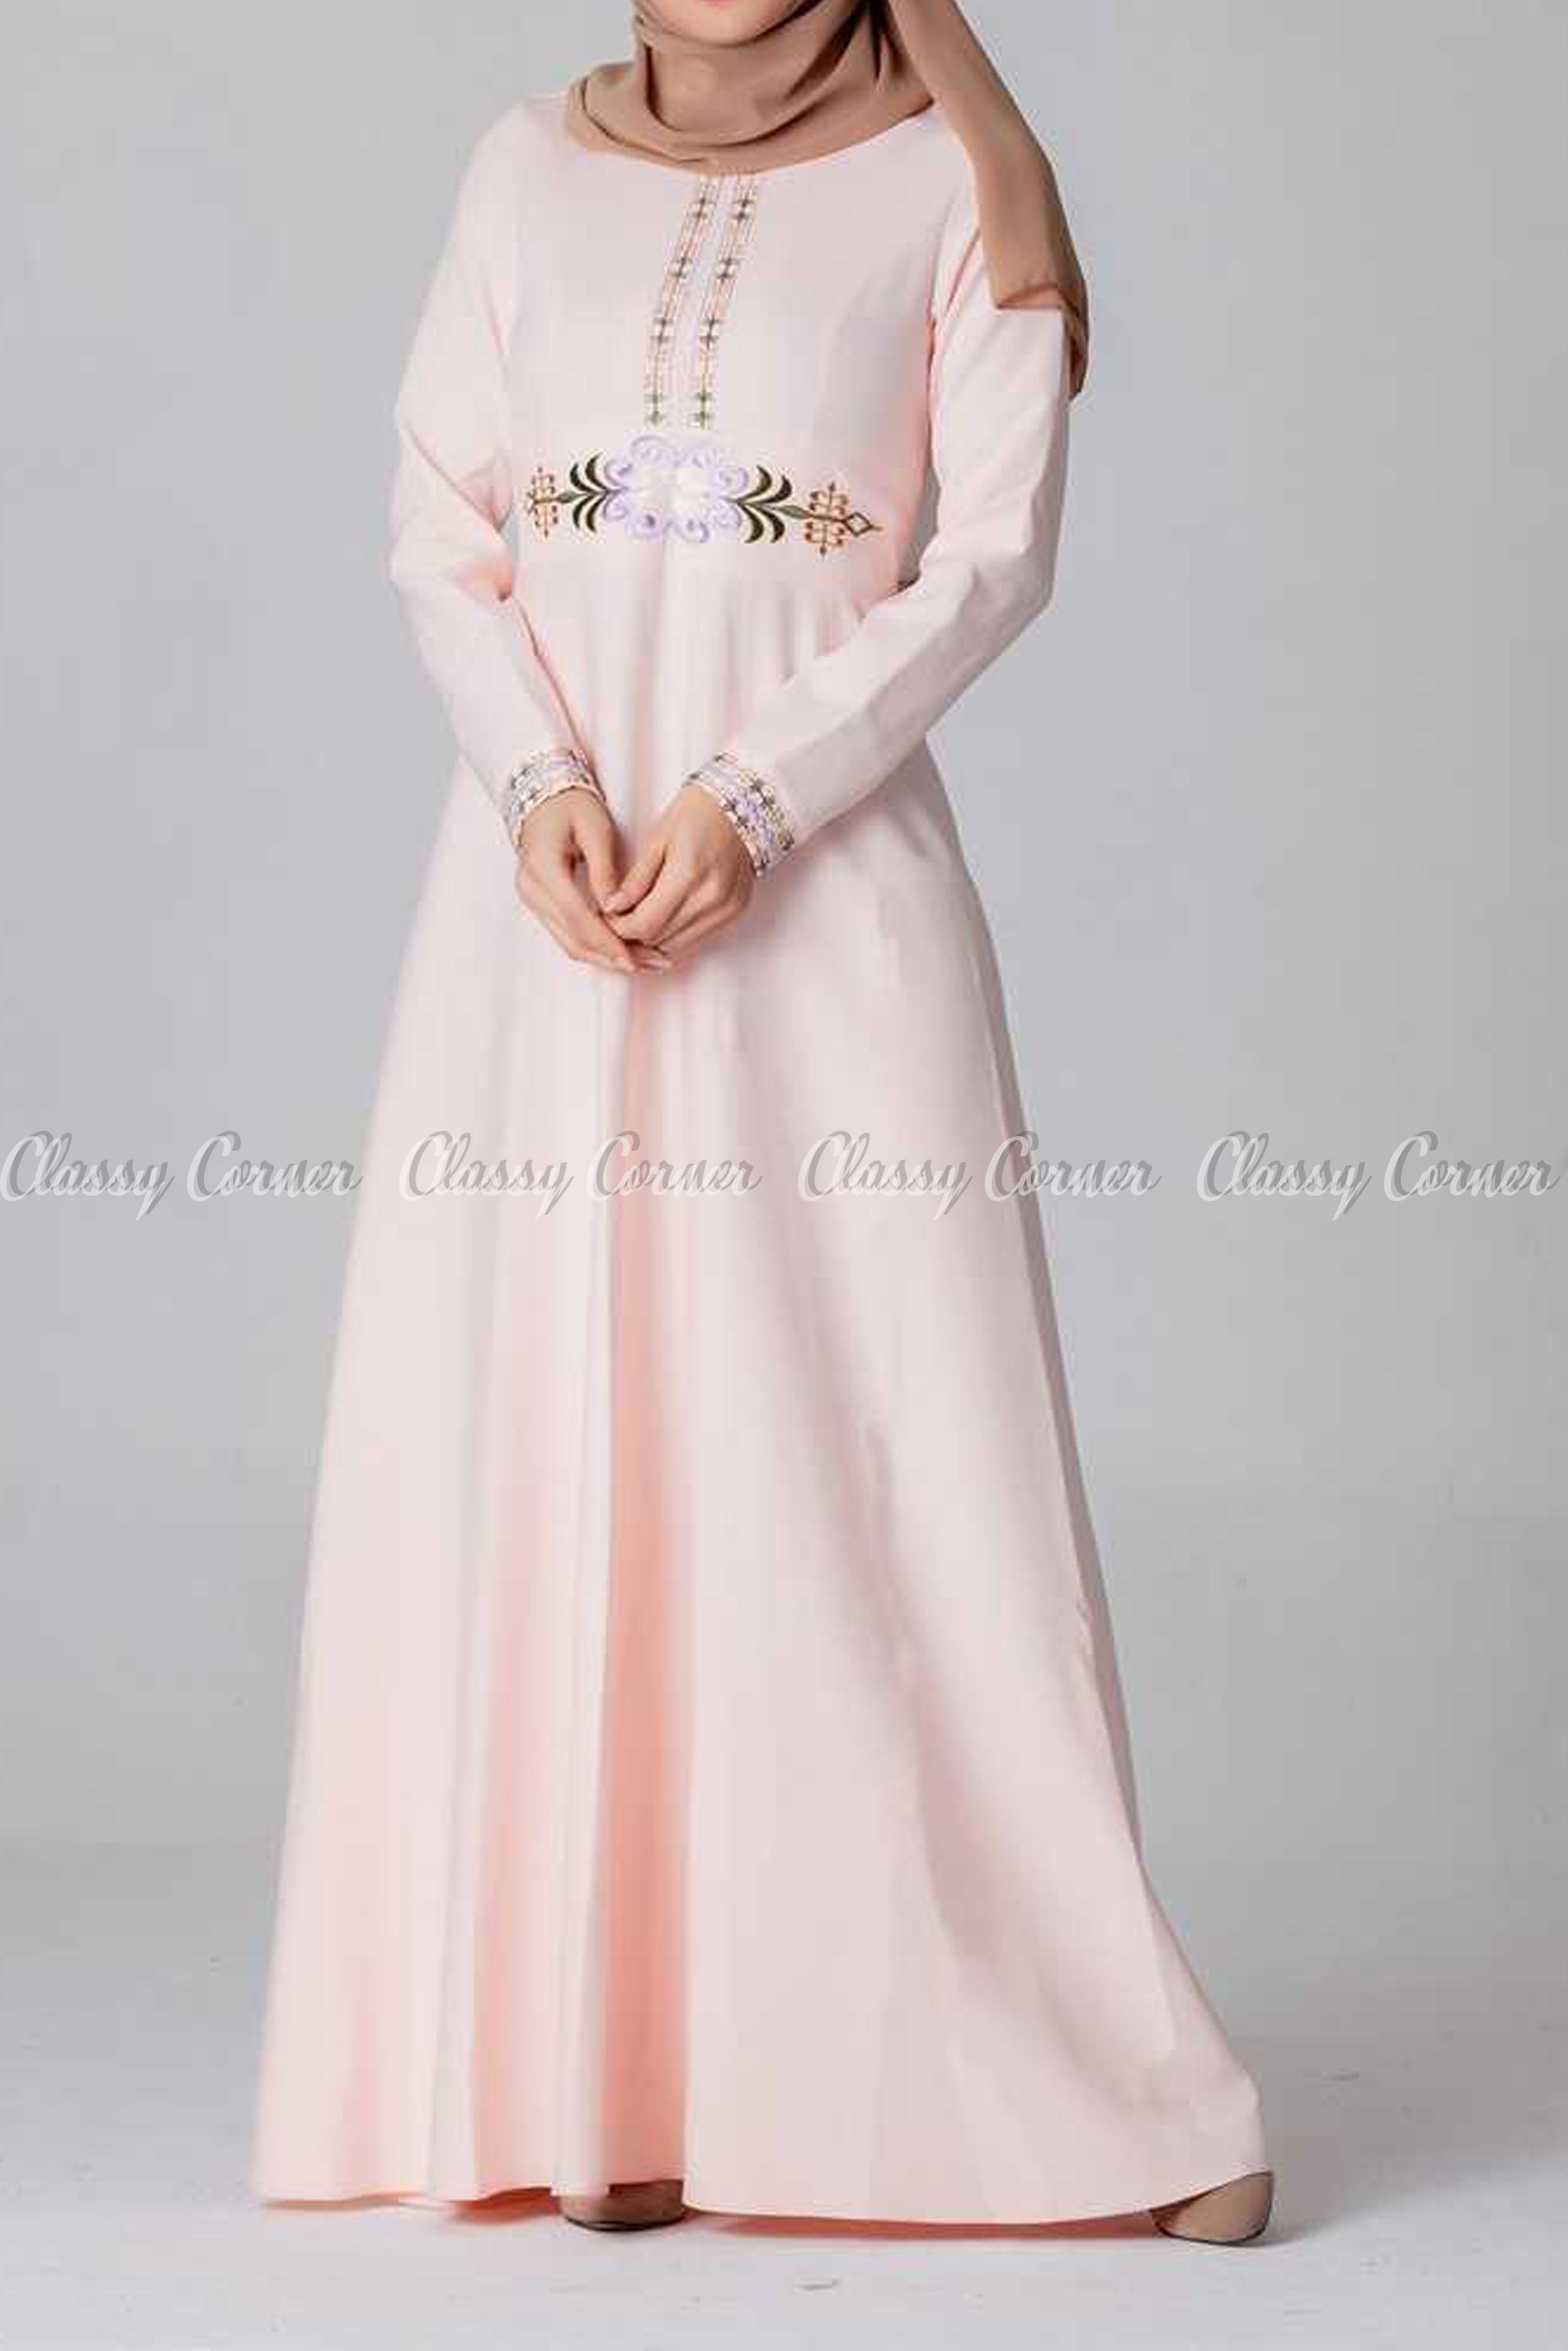 Elegant Embroidery Design Pink Modest Long Dress - full front view